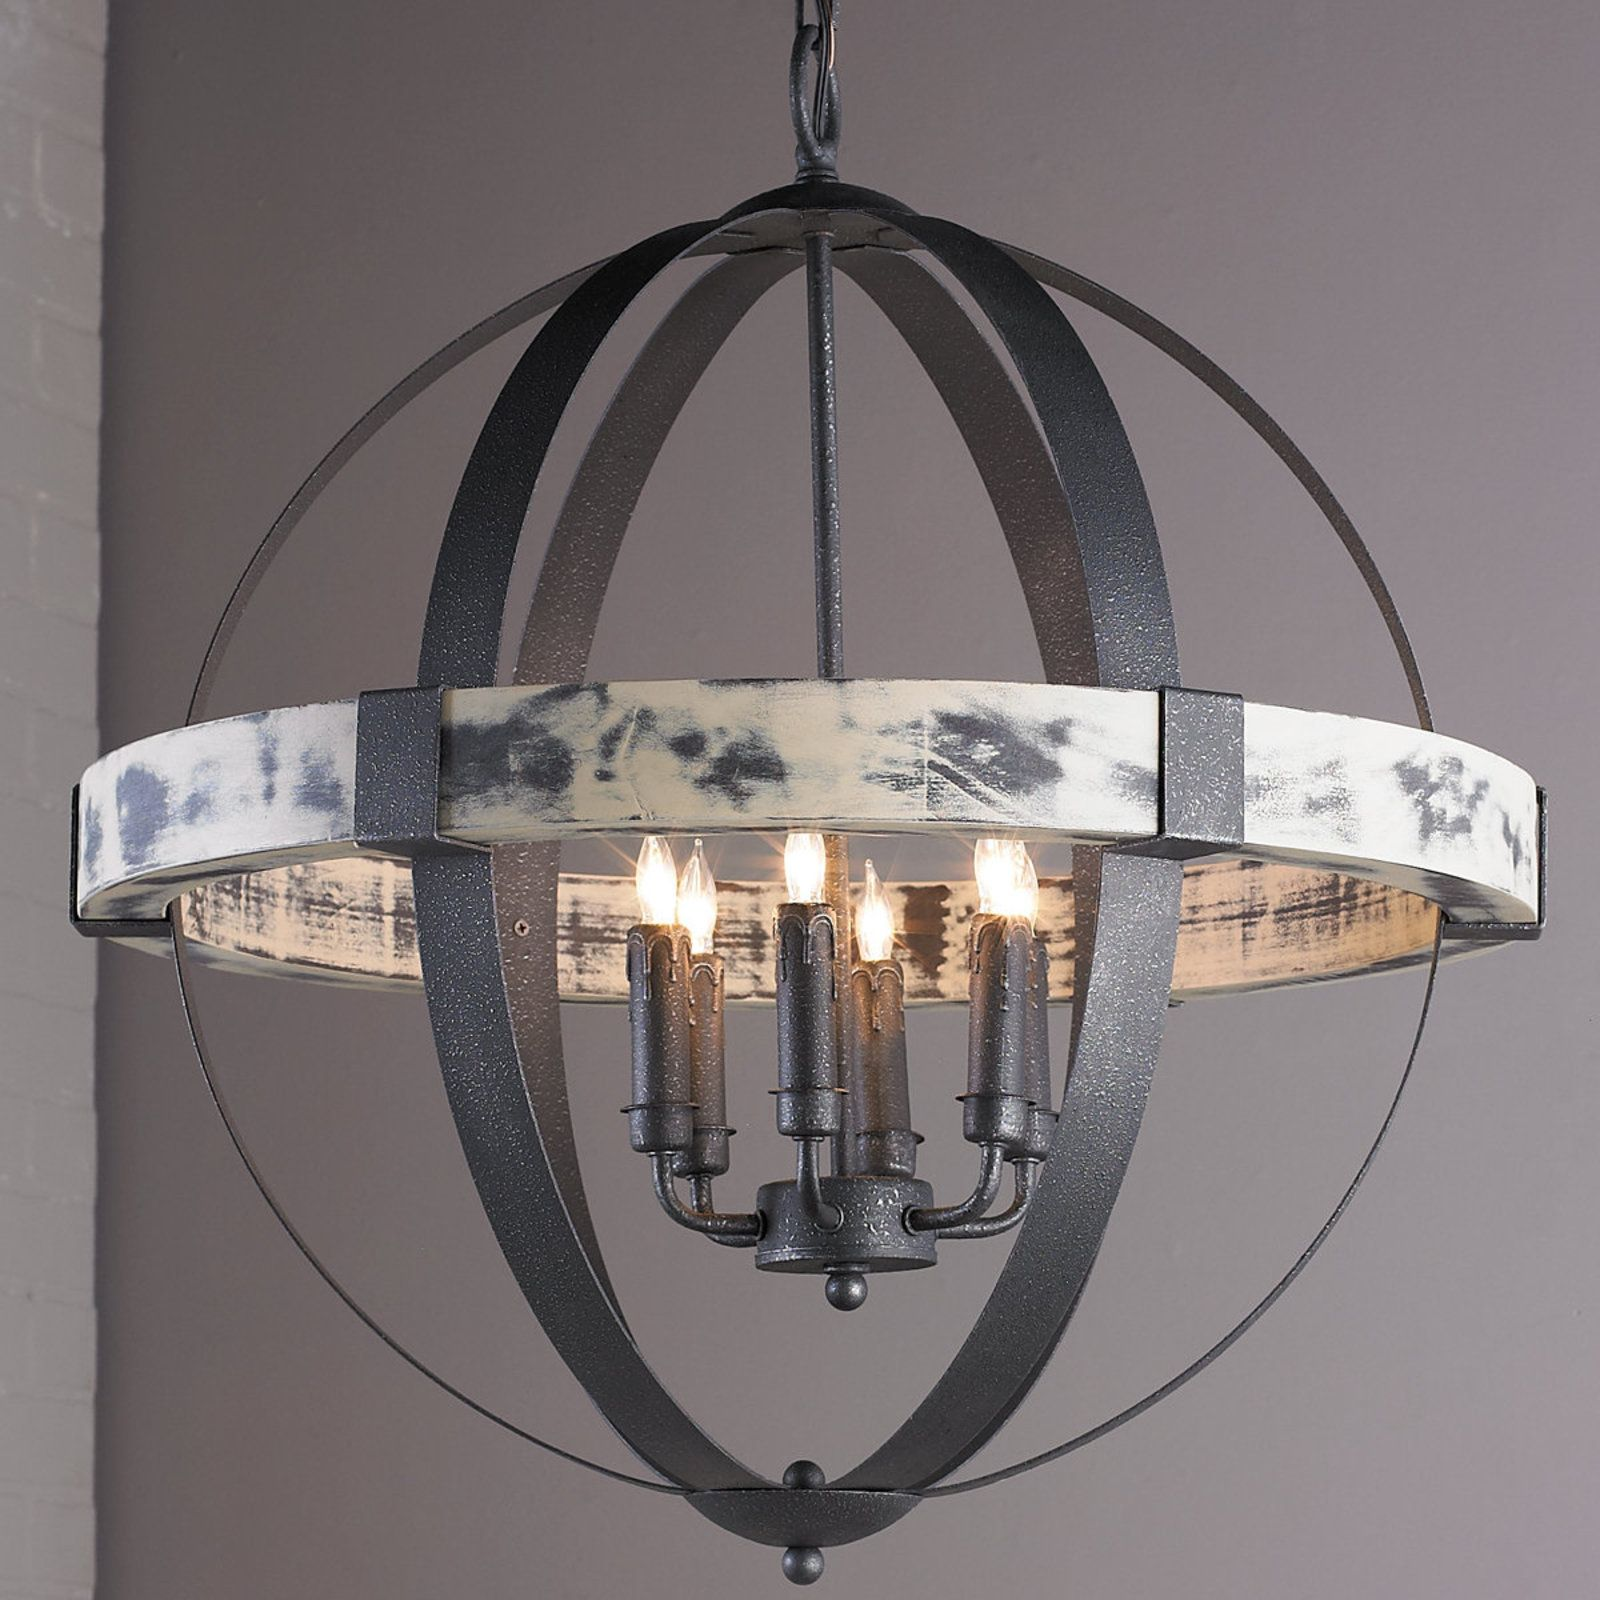 12 Different Chandelier Styles And Shapes Globe Chandelier Iron